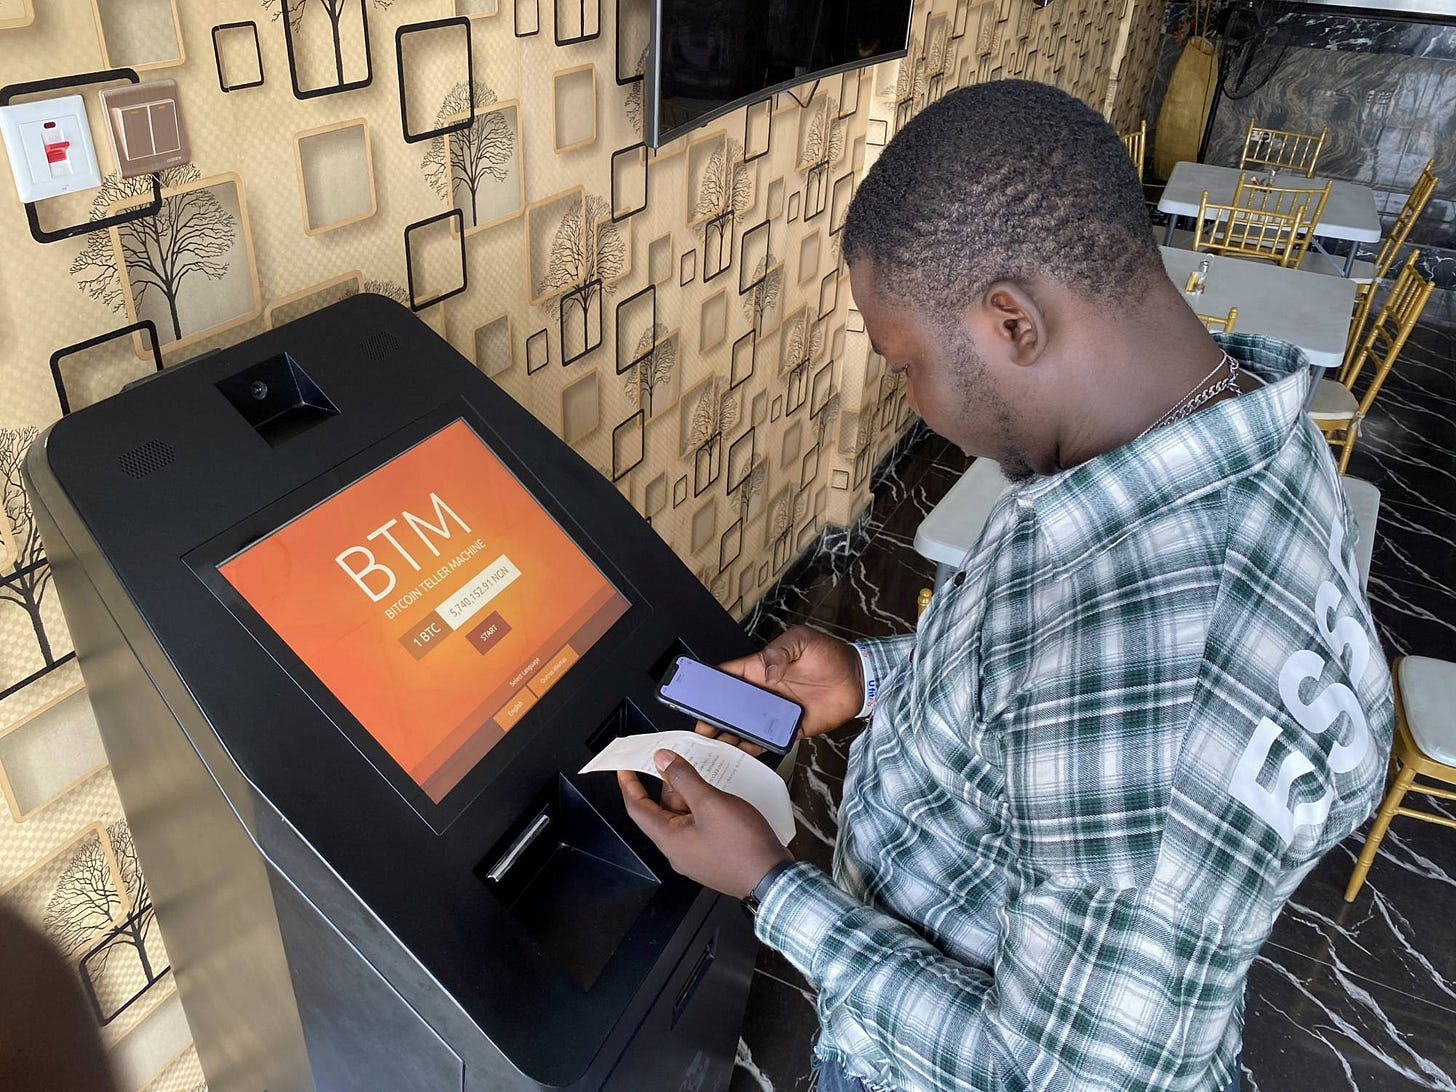 How bitcoin gained currency in Africa   The Japan Times